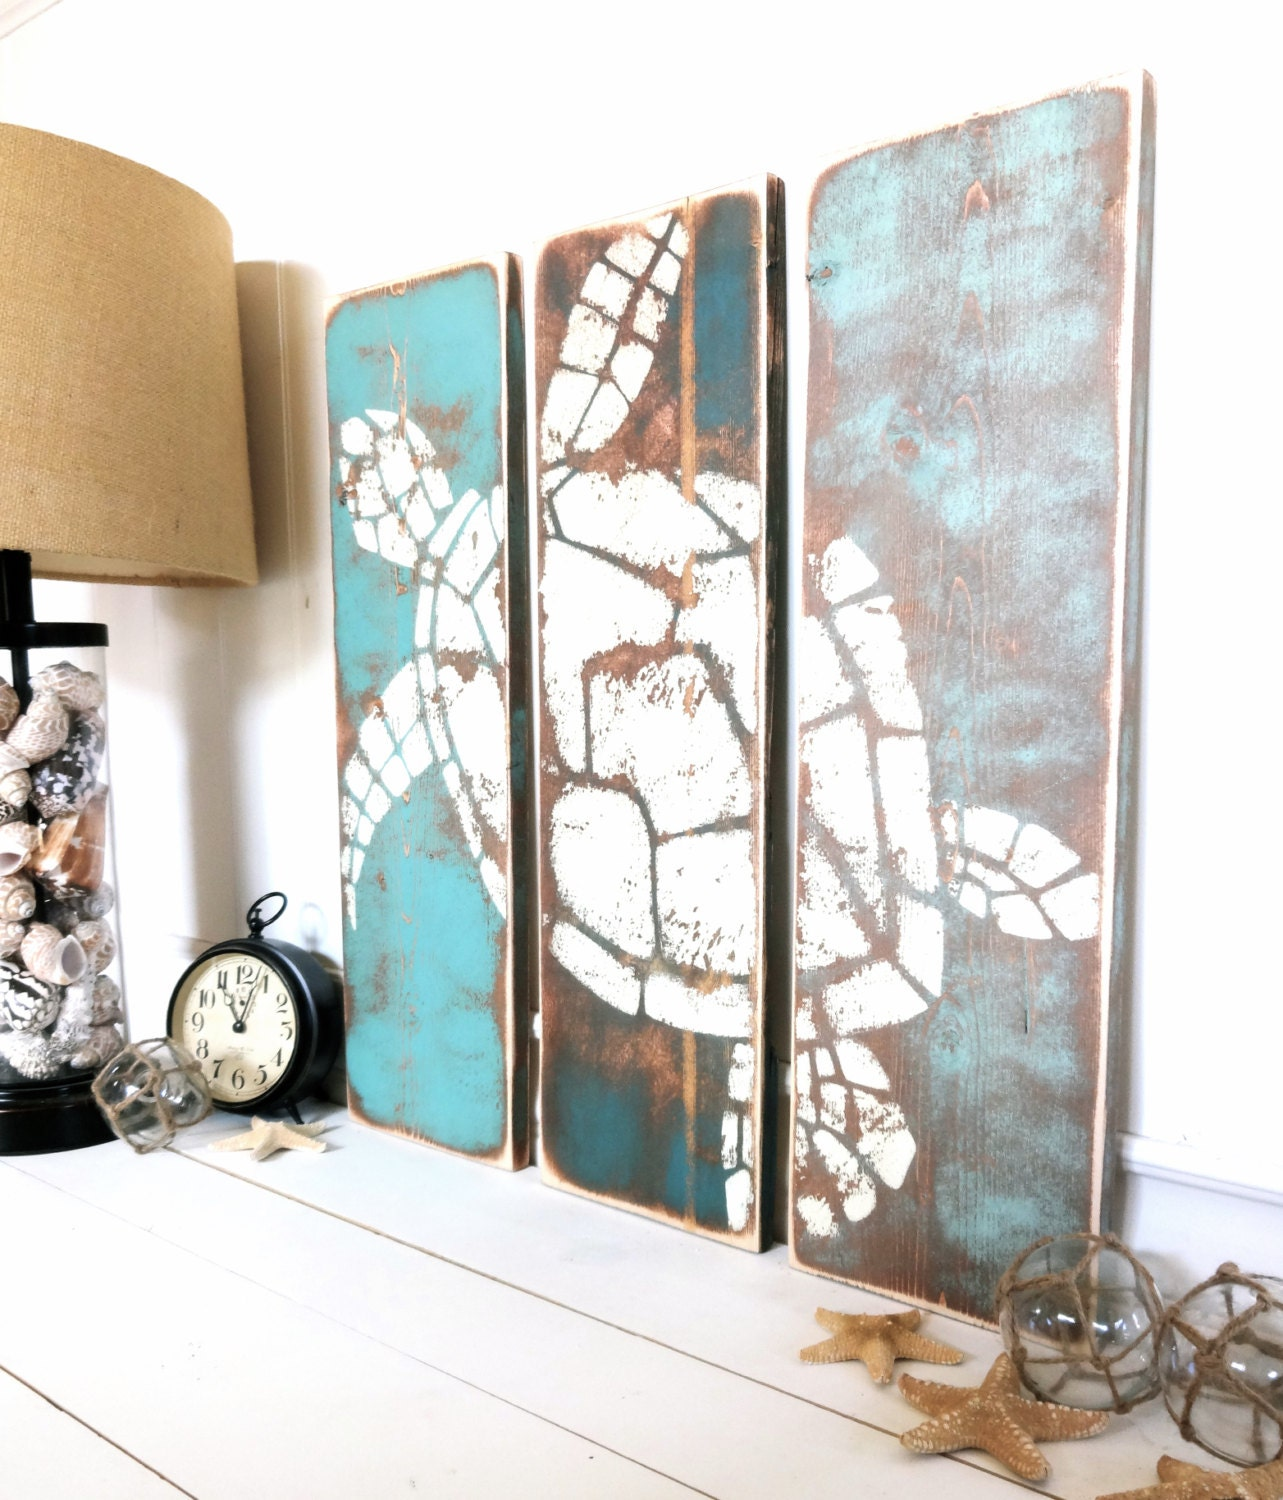 Meet me bye the sea vintage honu for Coastal wall decor ideas